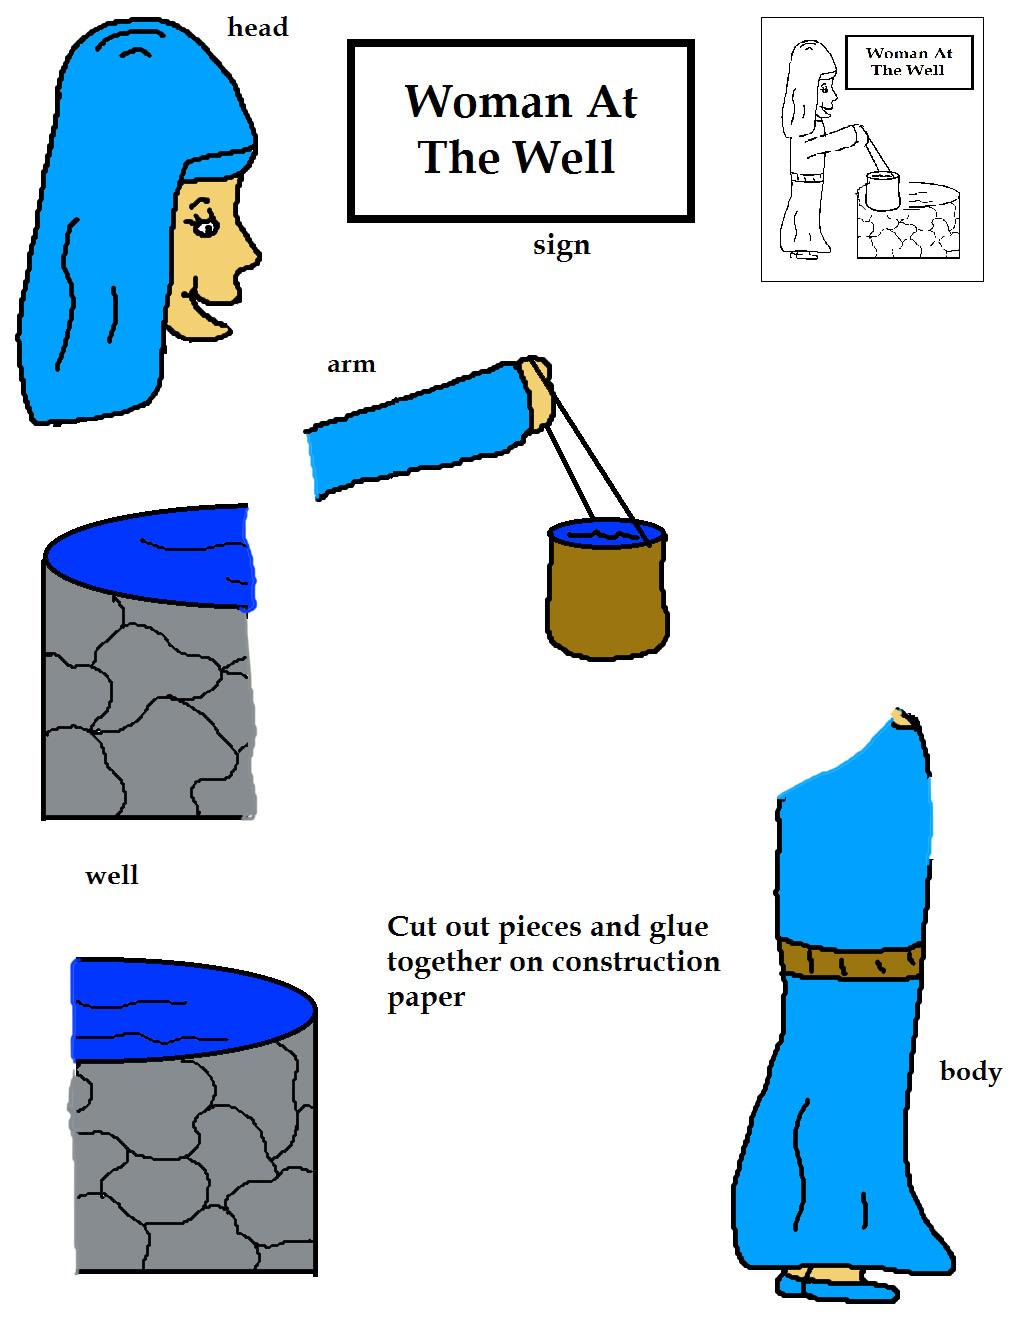 Sunday School Coloring Pages - Woman At The Well | 1319x1019